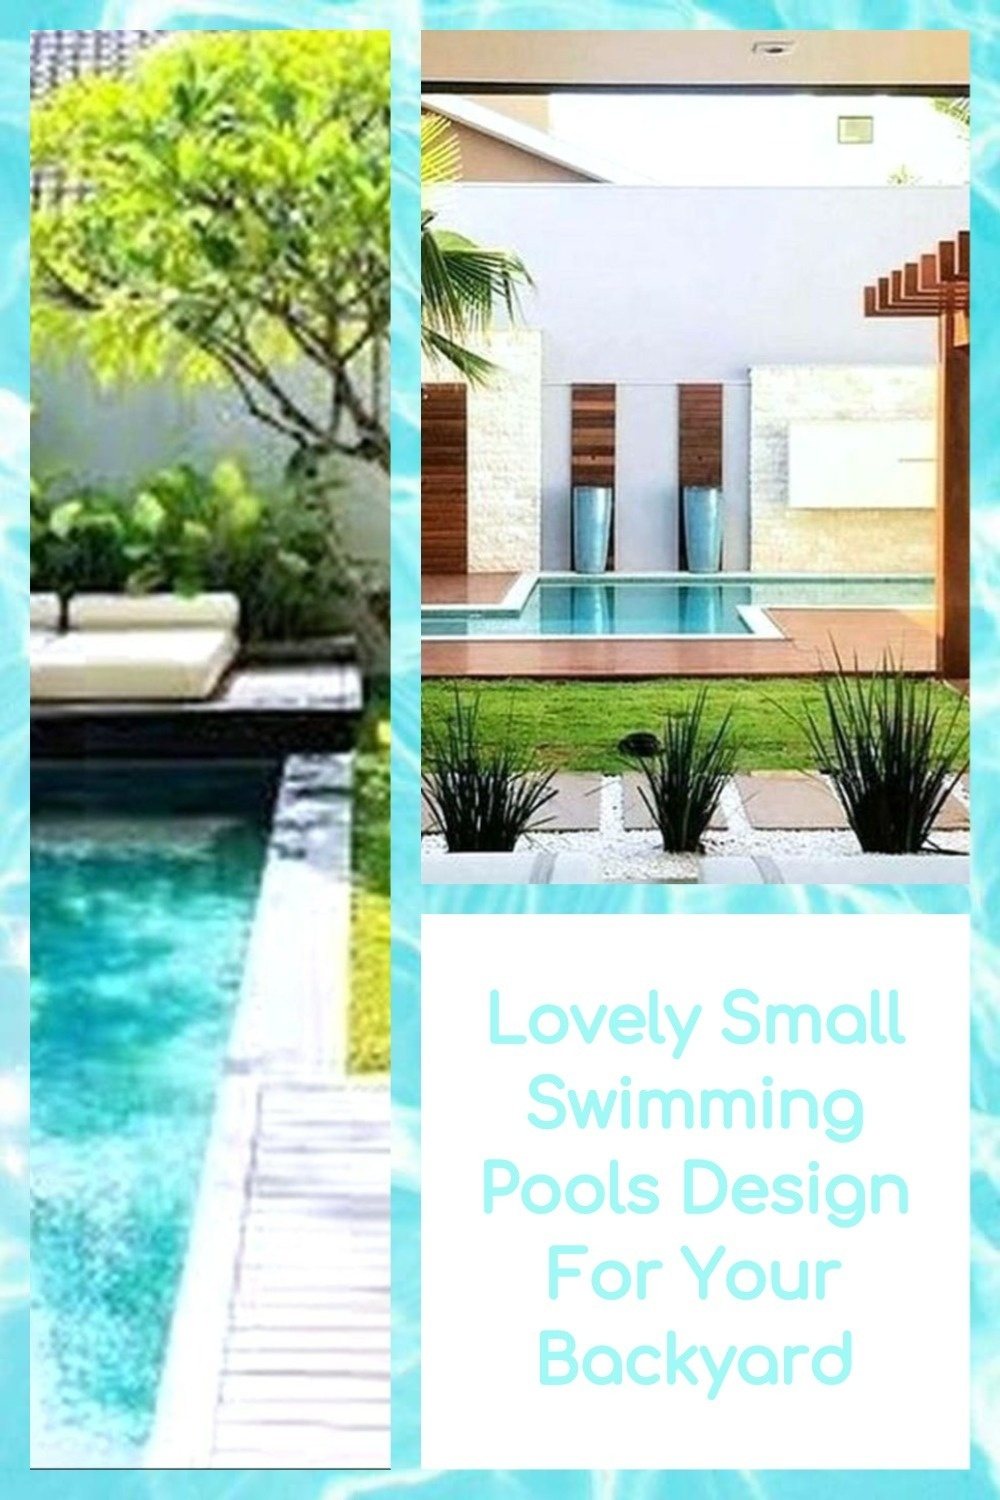 Lovely Small Swimming Pools Design For Your Backyard